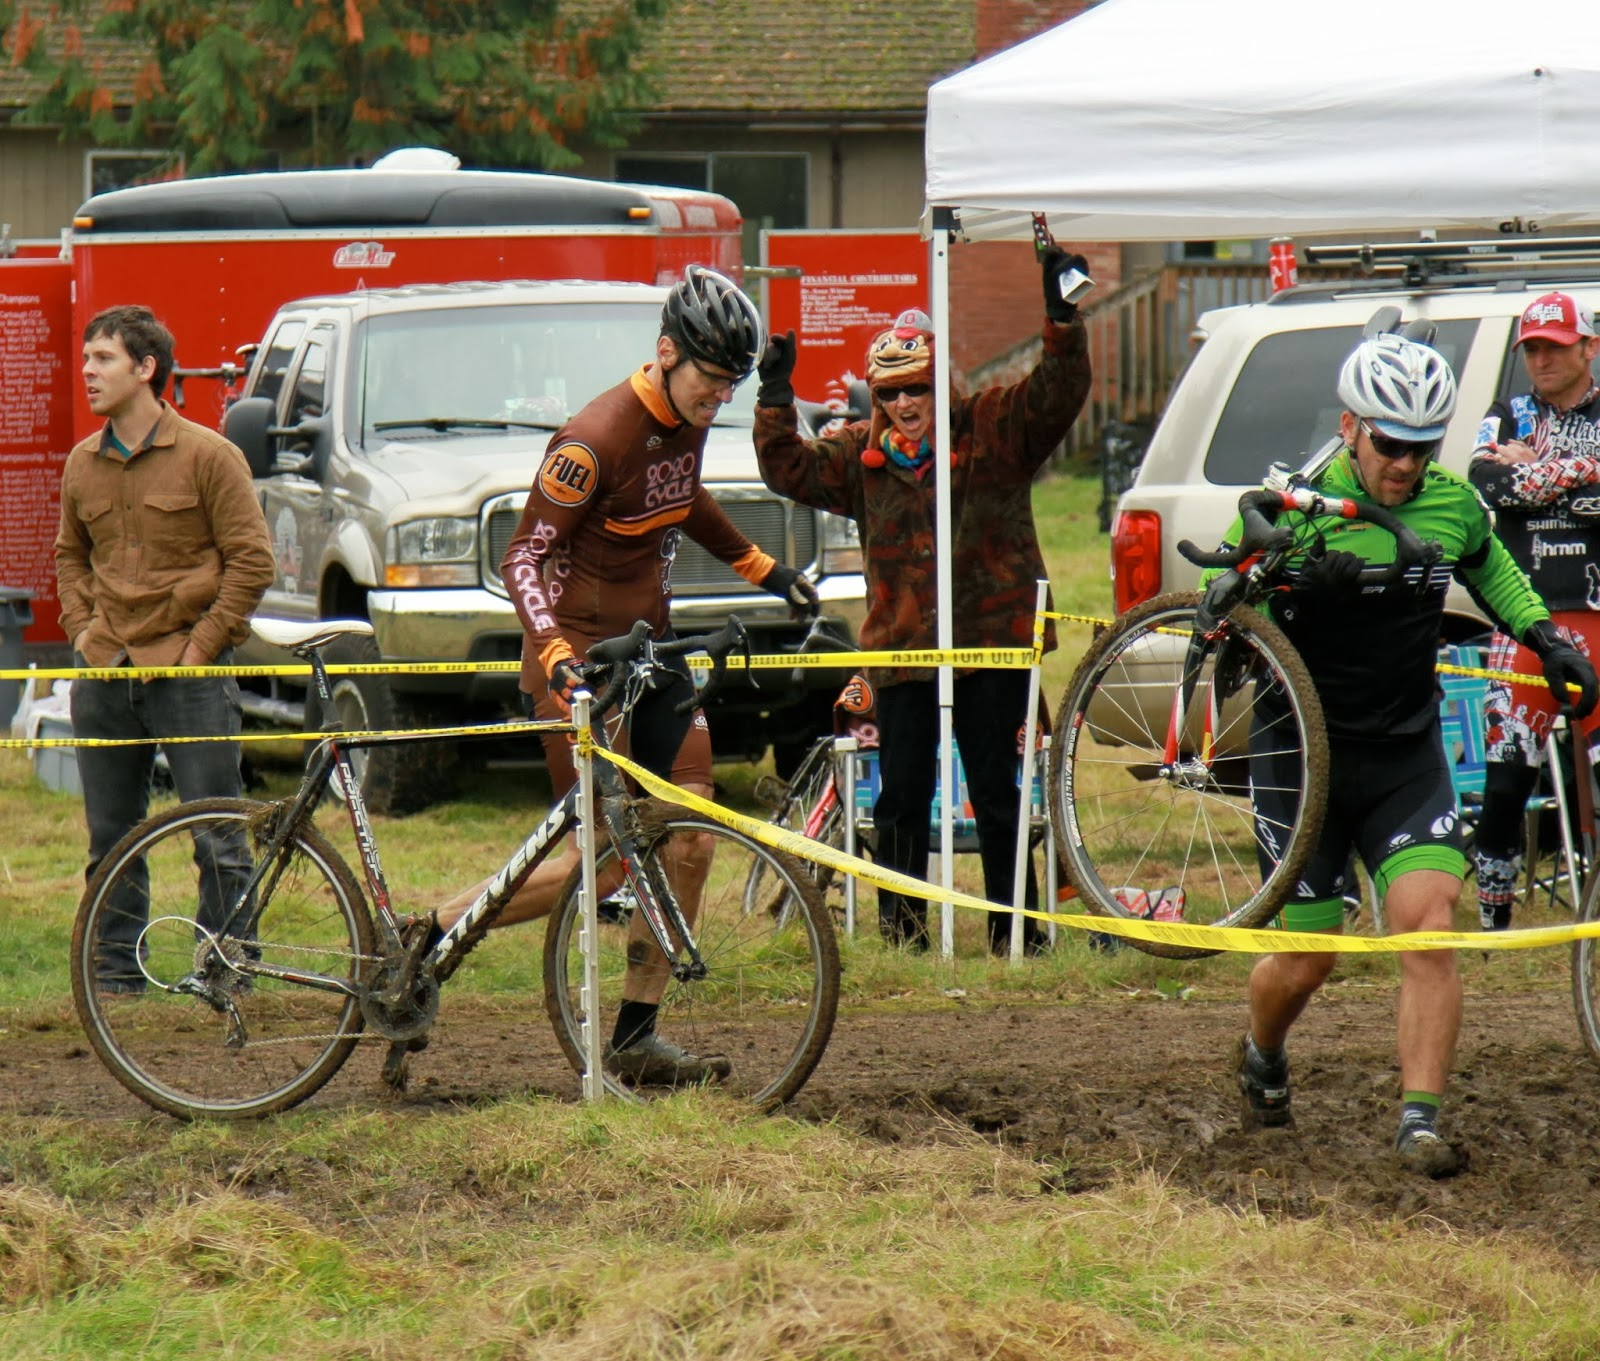 evo davo scx 2 2013 tall chief cyclocross race report. Black Bedroom Furniture Sets. Home Design Ideas